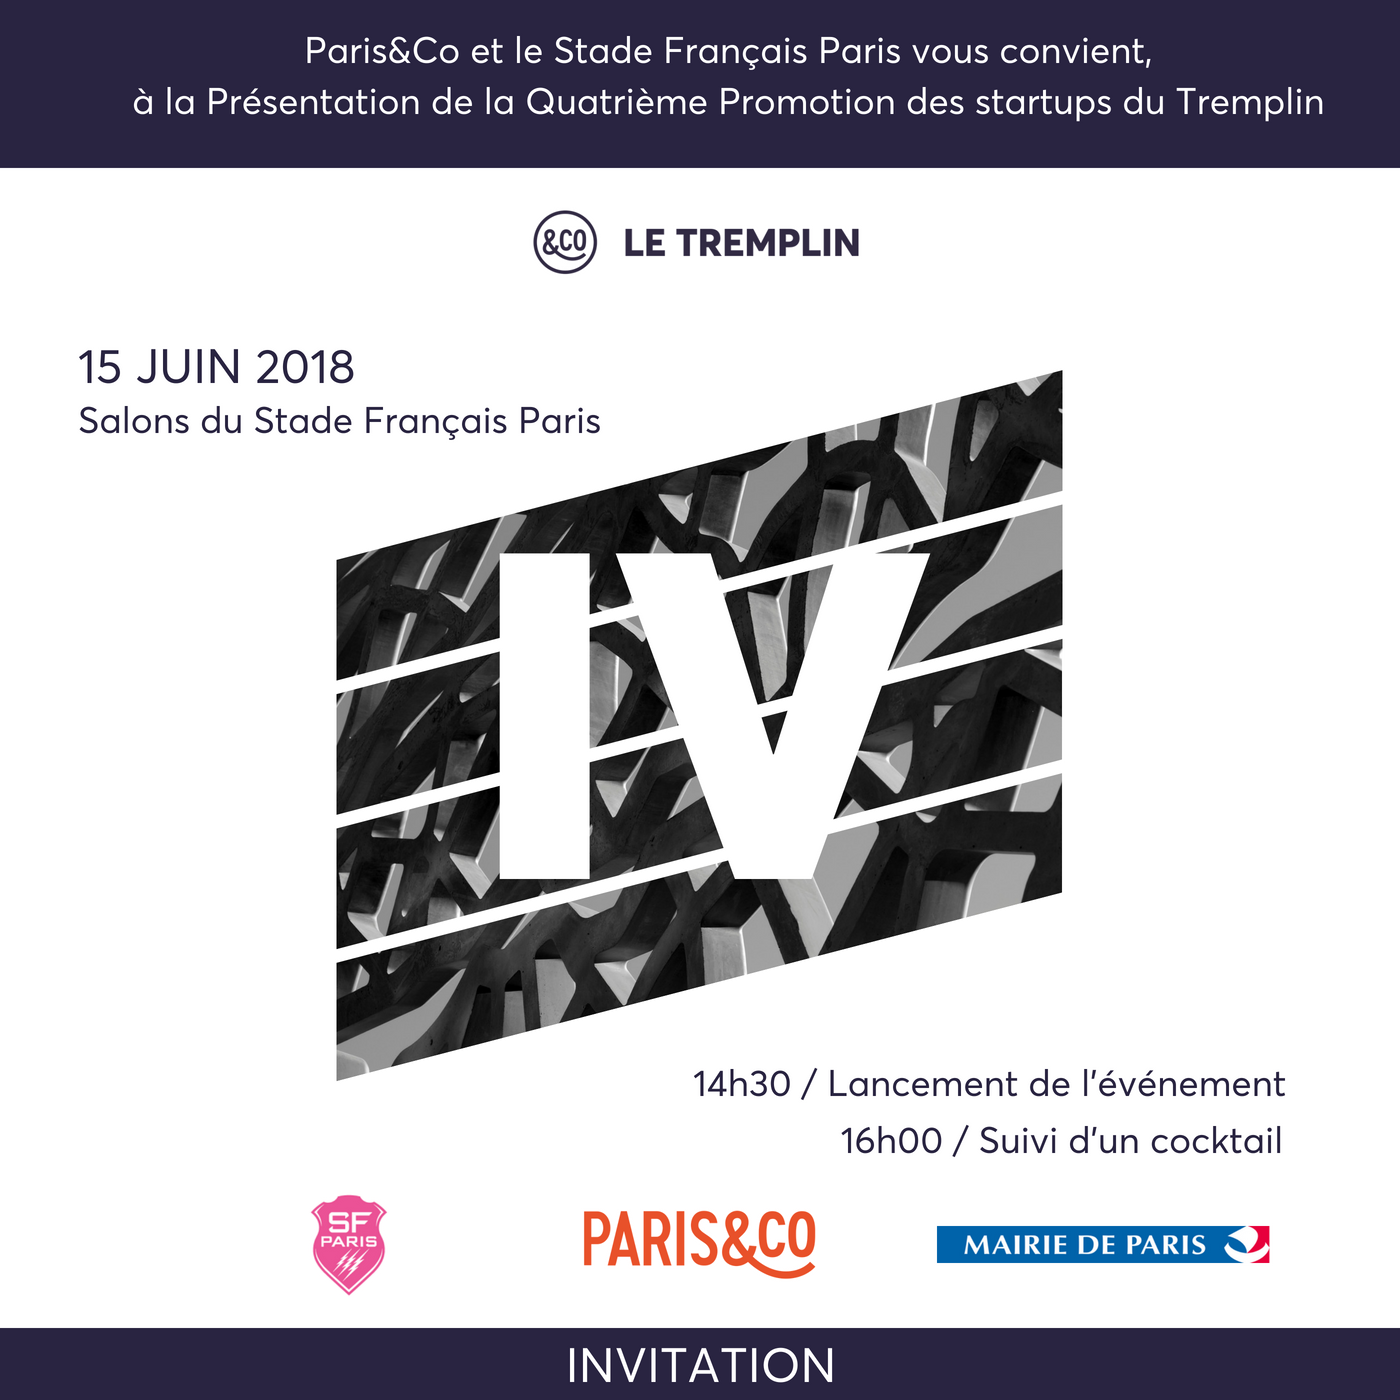 2018 05 31 Invitation   Le Tremplin